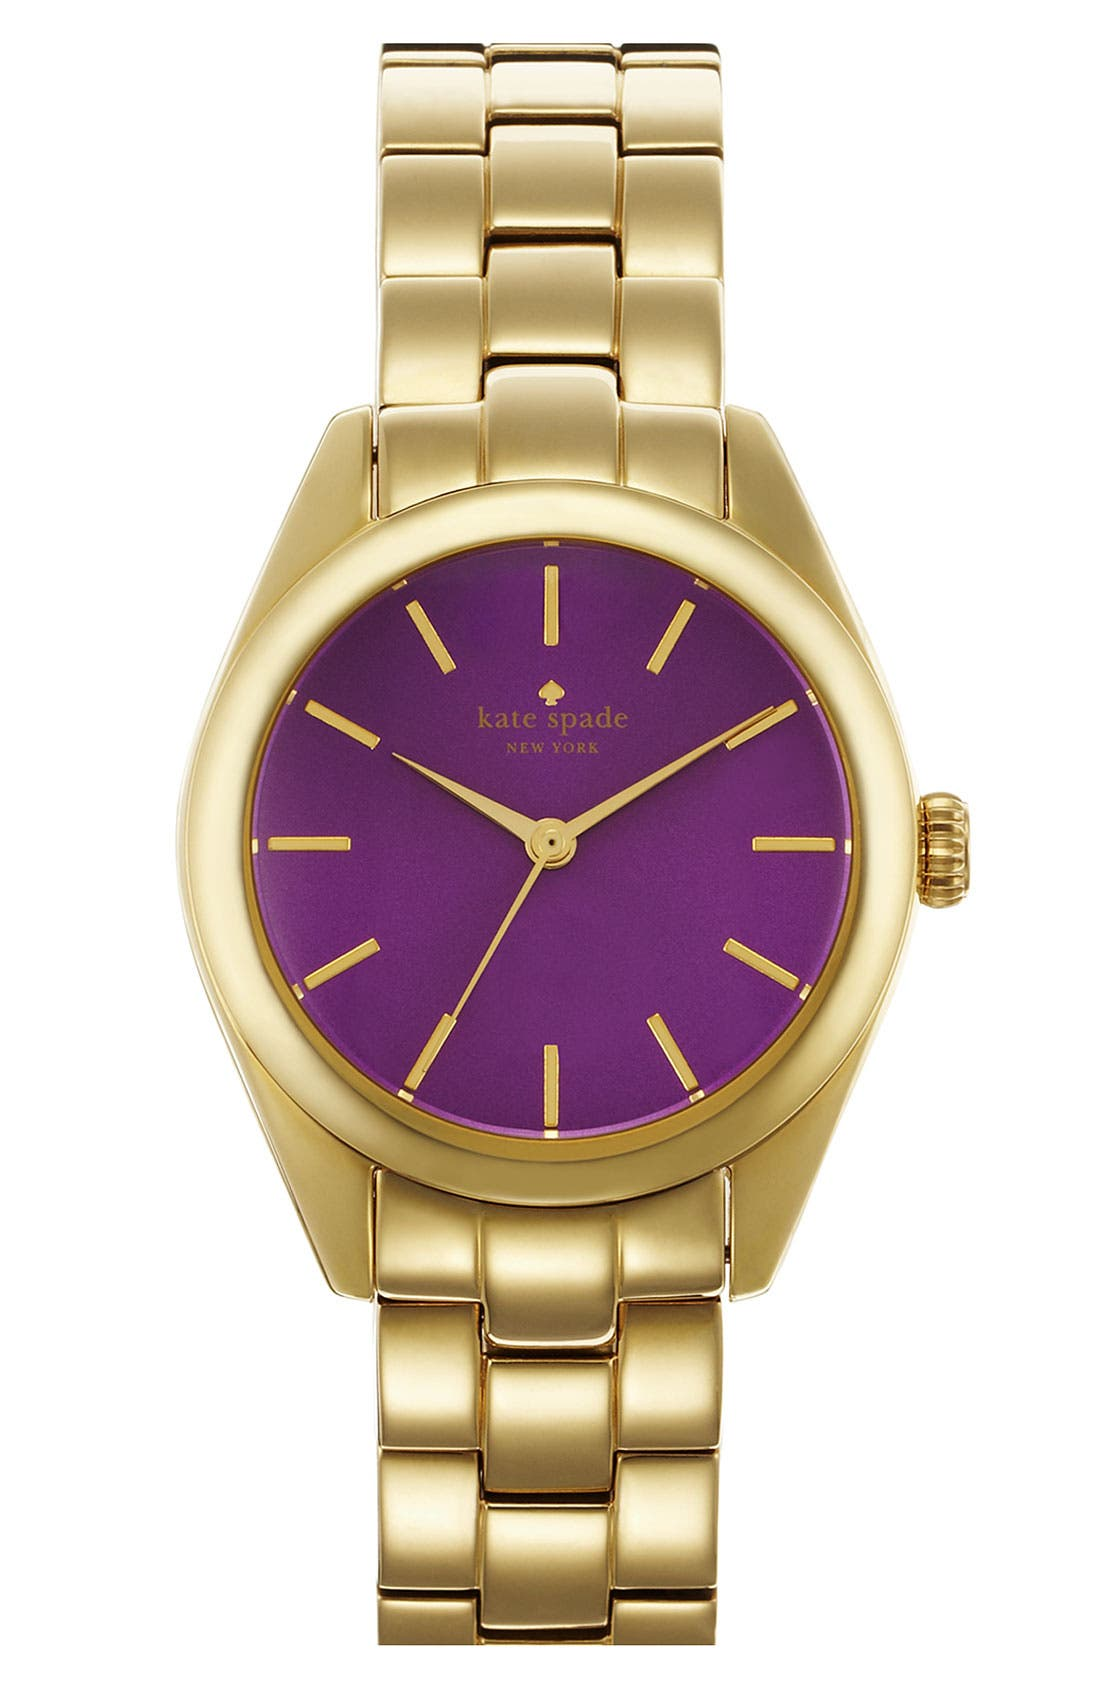 Main Image - kate spade new york 'seaport' bracelet watch